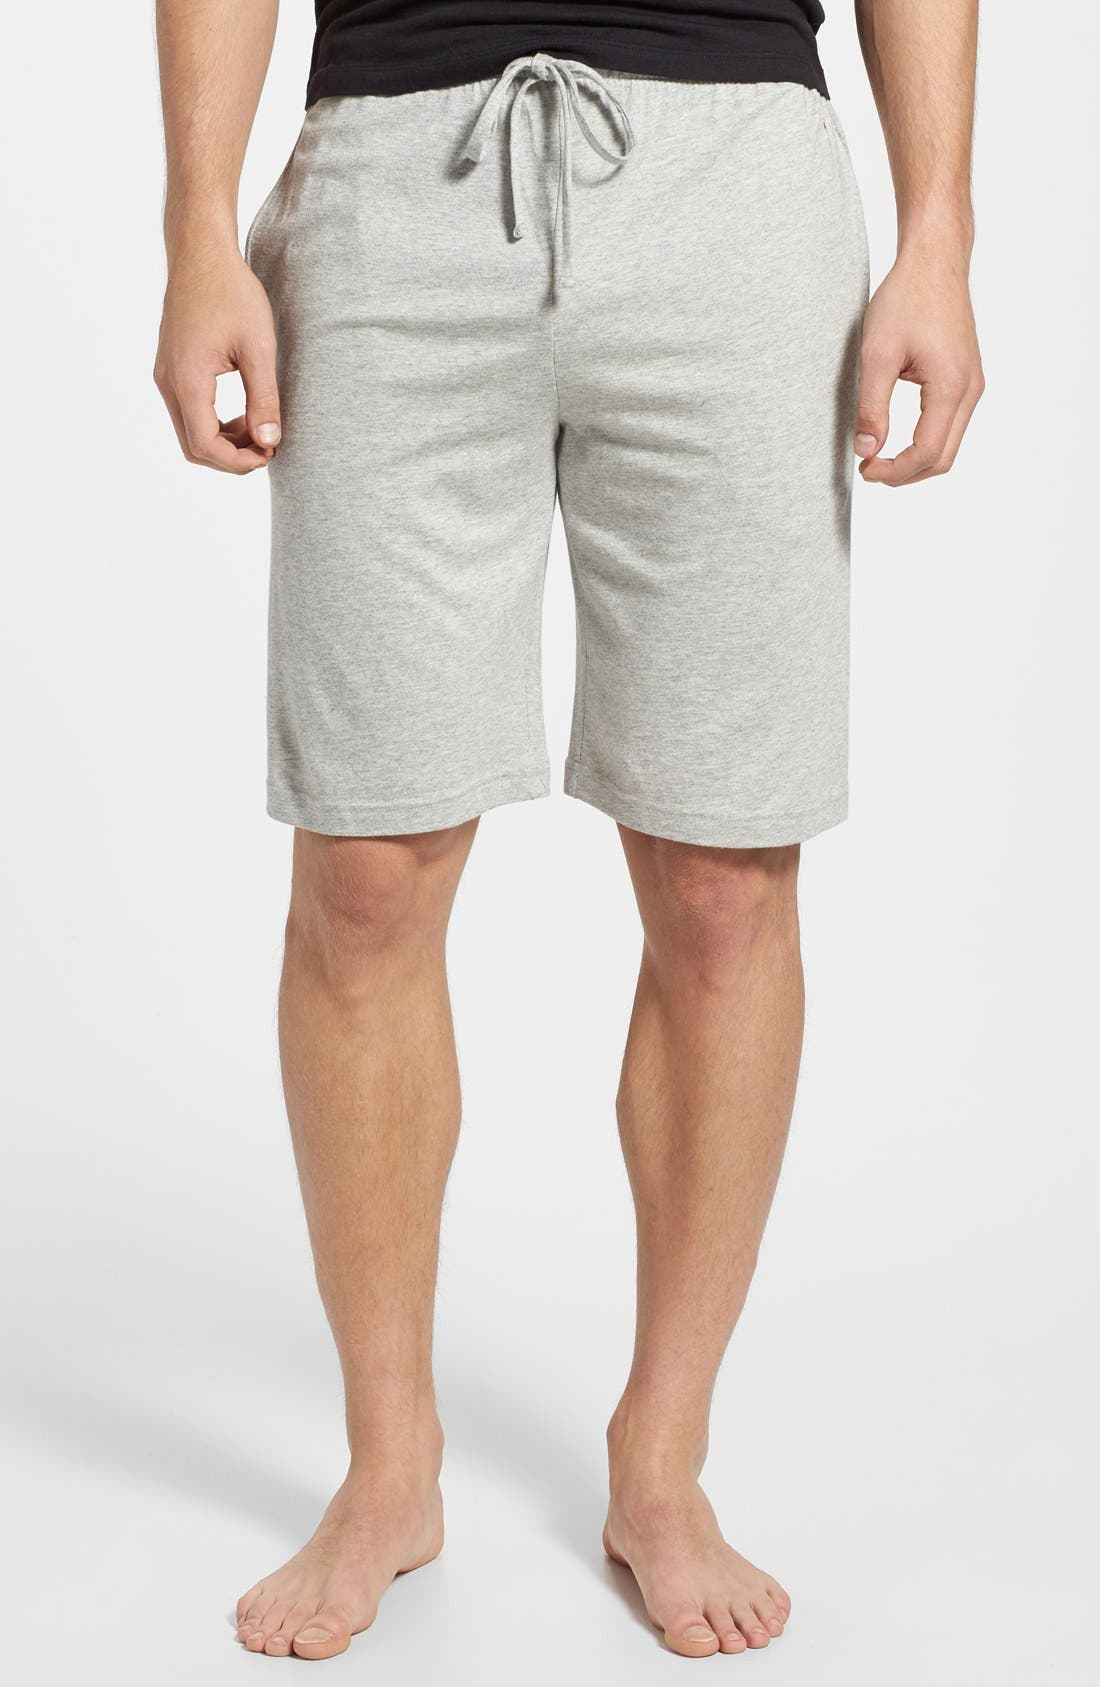 Men's Pajamas: Lounge & Sleepwear | Nordstrom